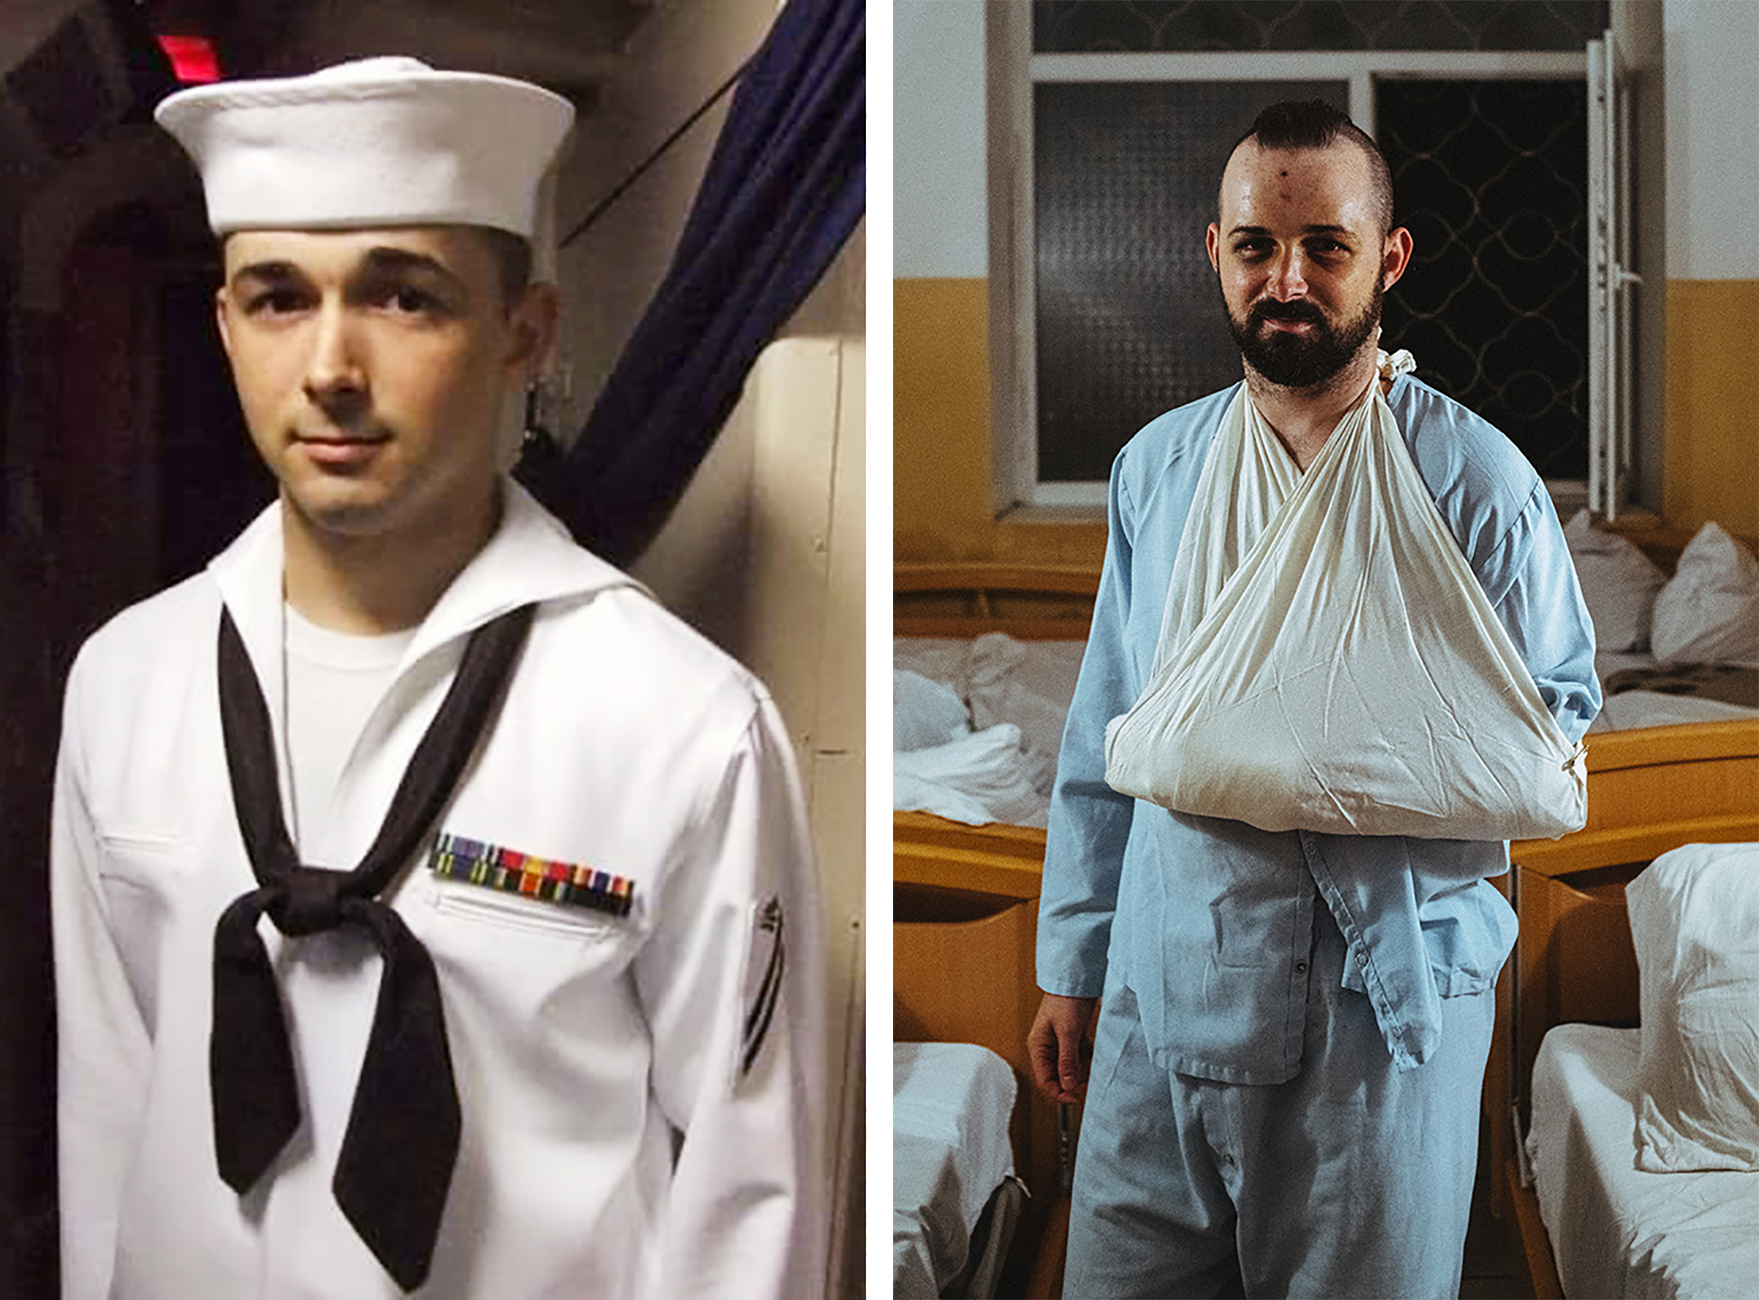 Left: Shawn Fuller aboard the U.S.S. Russell in the Persian Gulf circa 2010; Right: Fuller in 2019 at a Ukraine military hospital after a drunken fight.